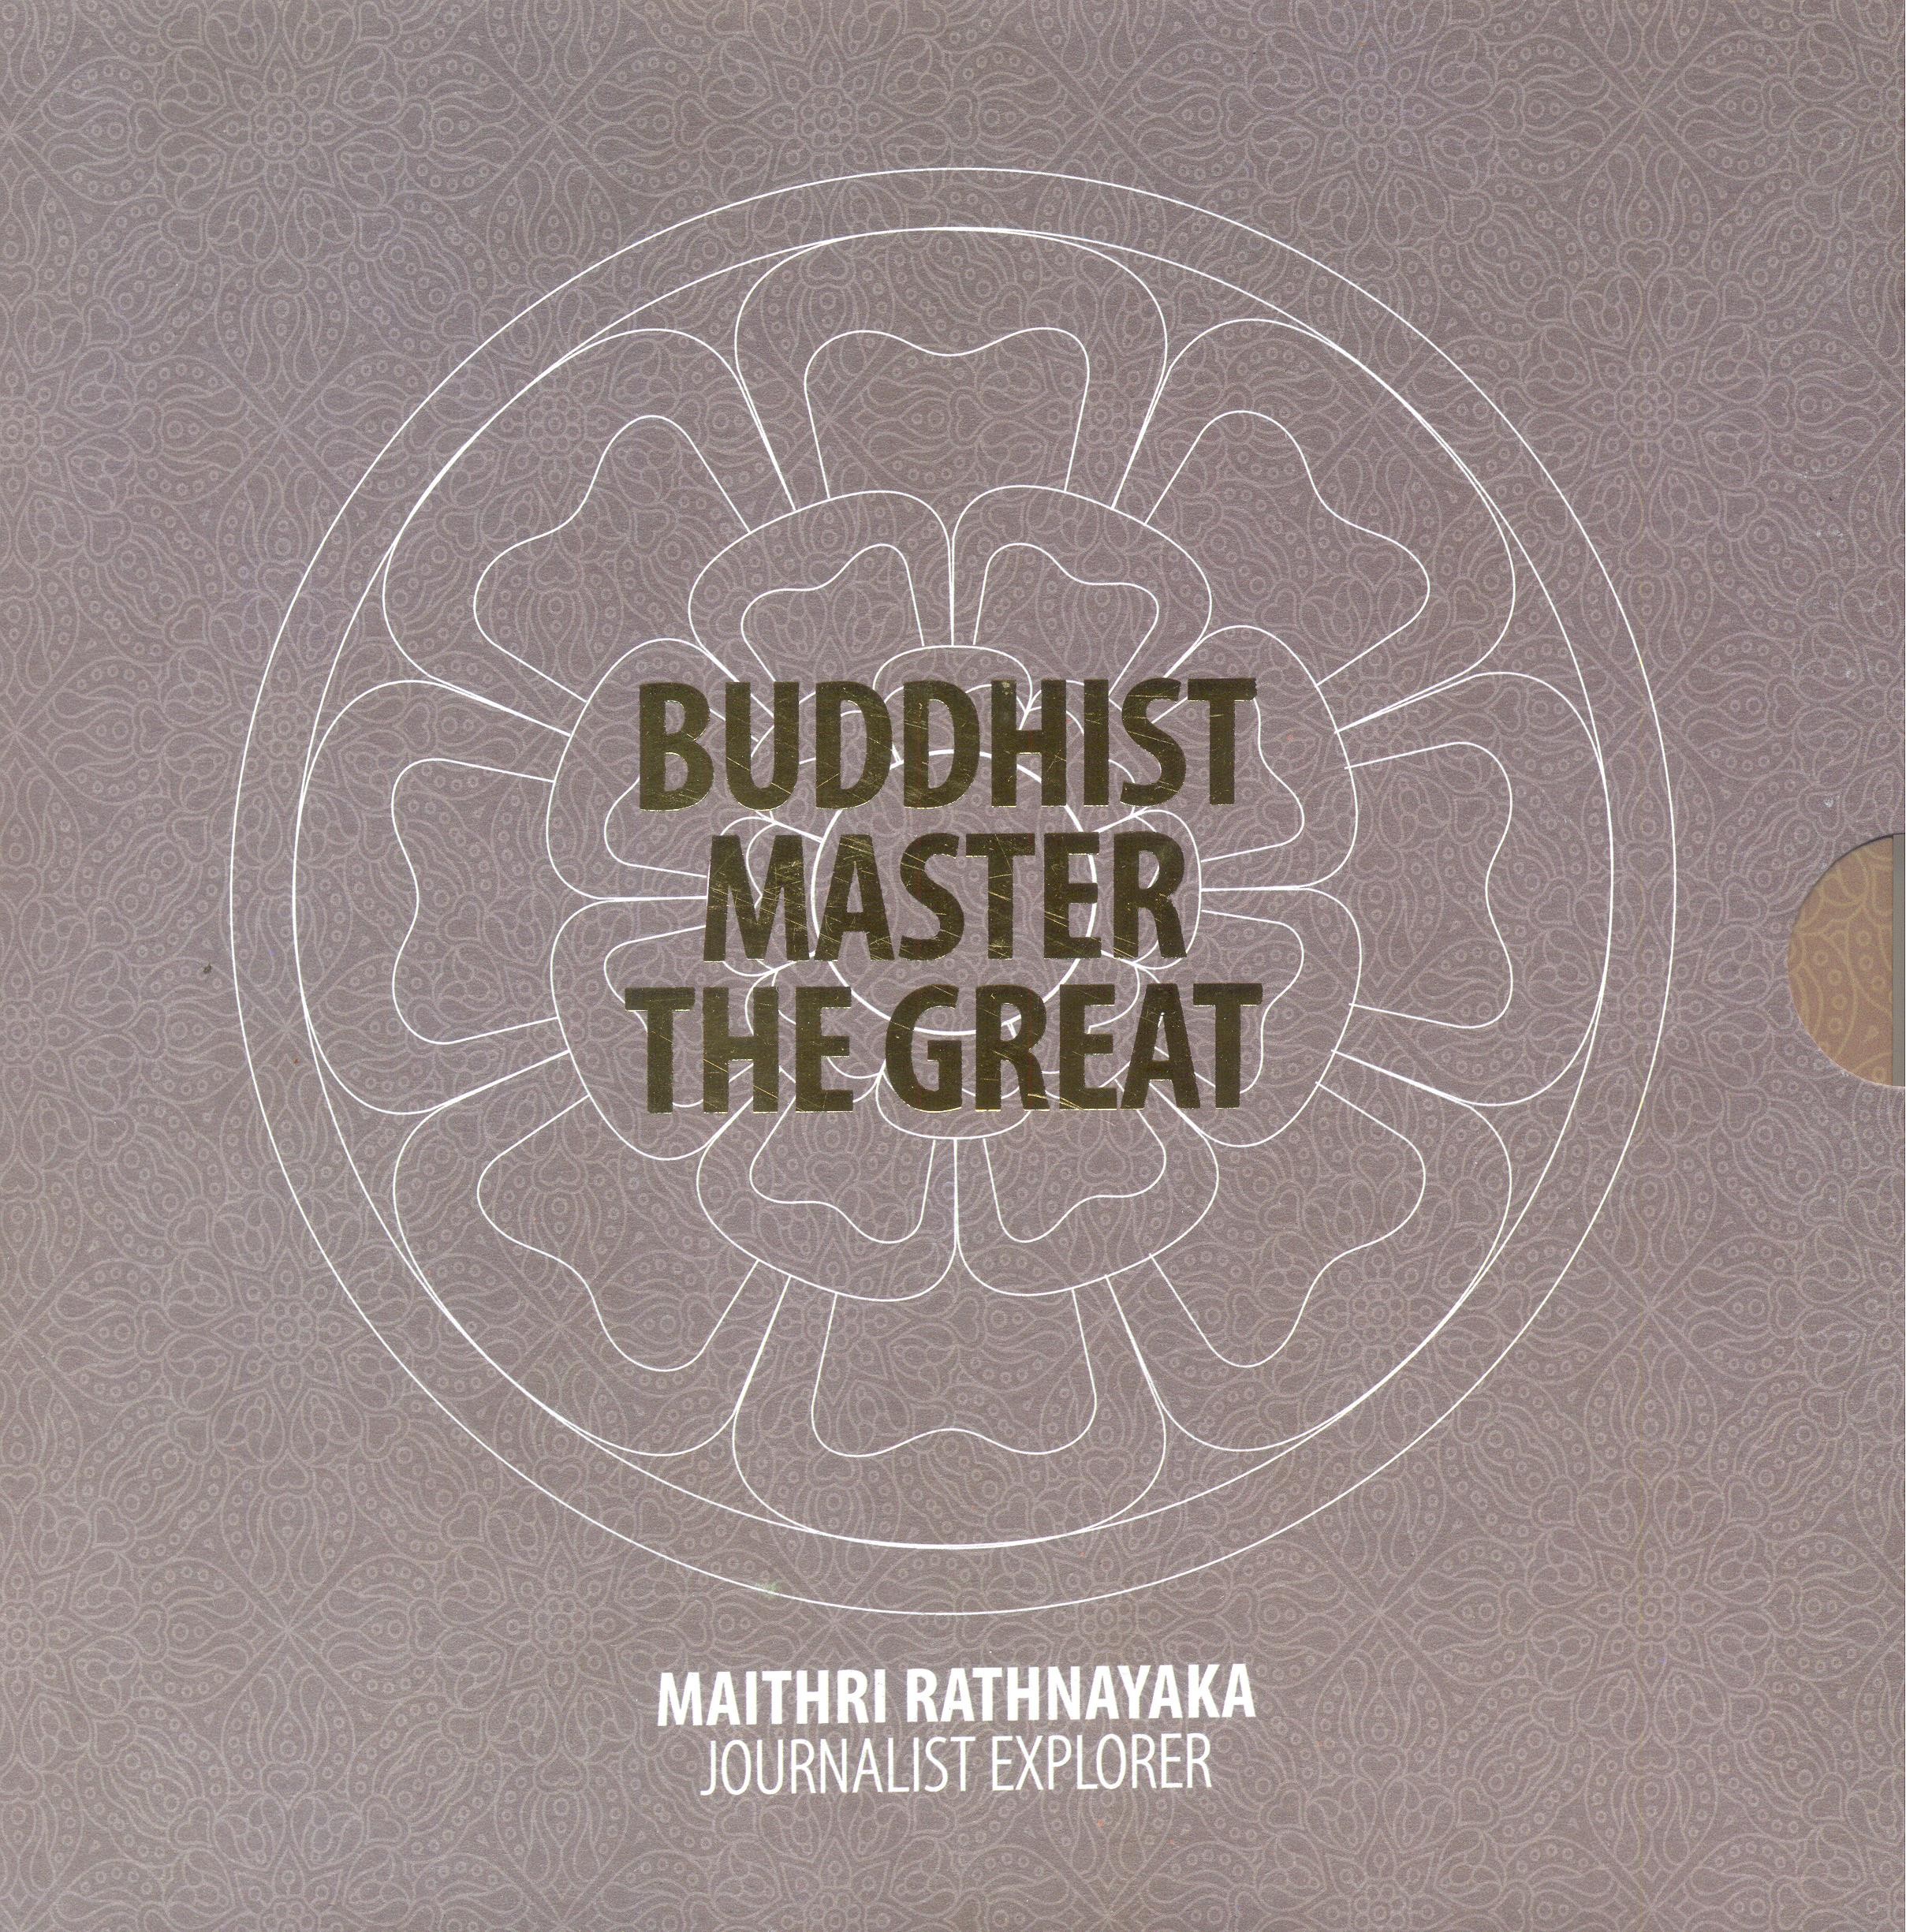 Buddhist Master The Great